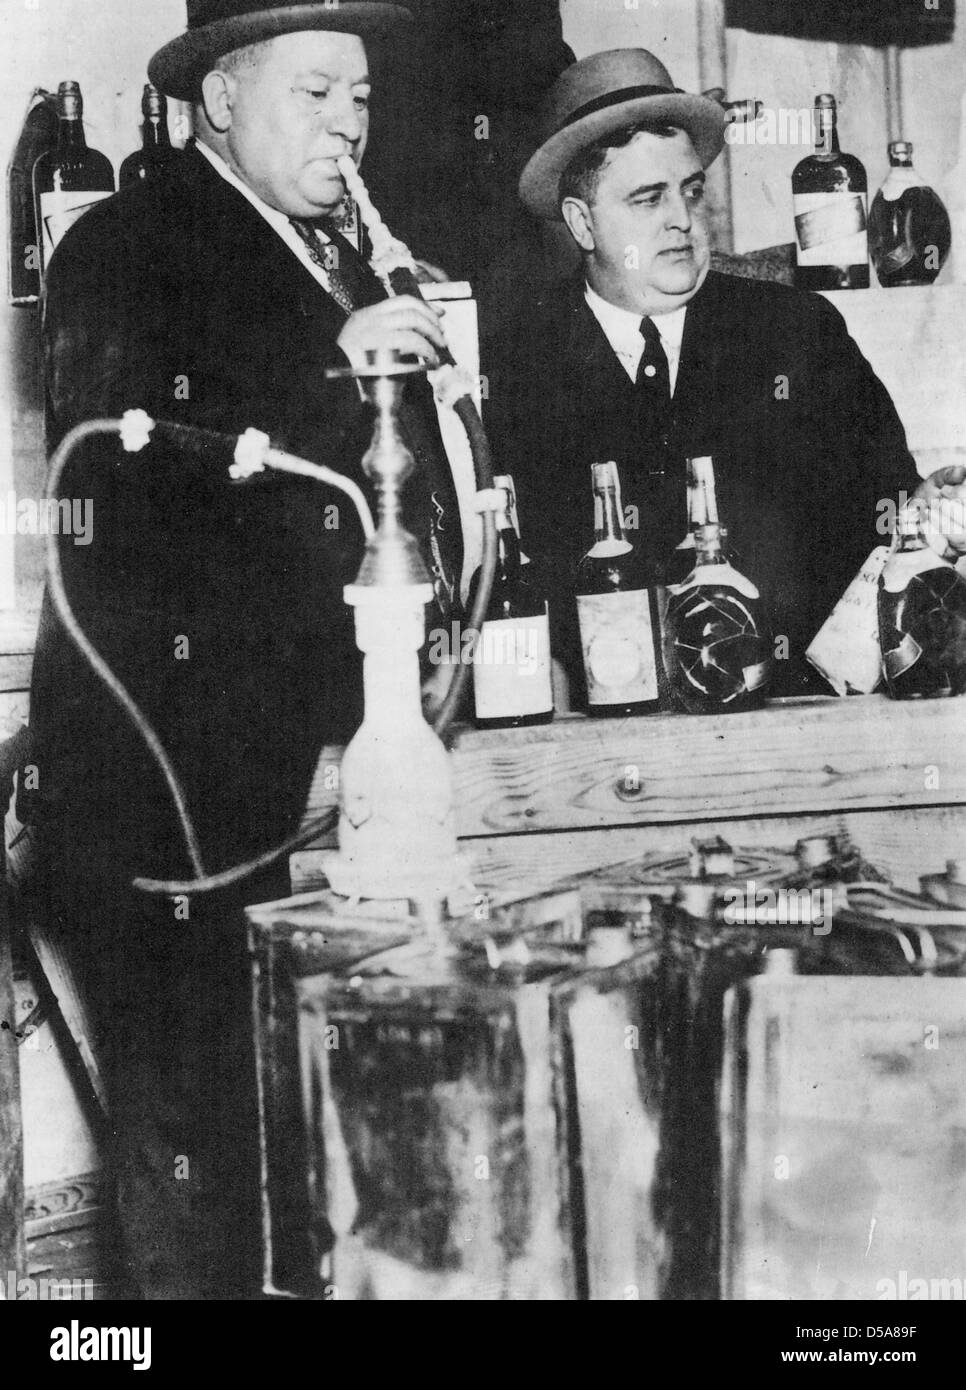 IZZY EINSTEIN (at left) and MOE SMITH  US Federal Police officers were the most successful officers during Prohibition - Stock Image